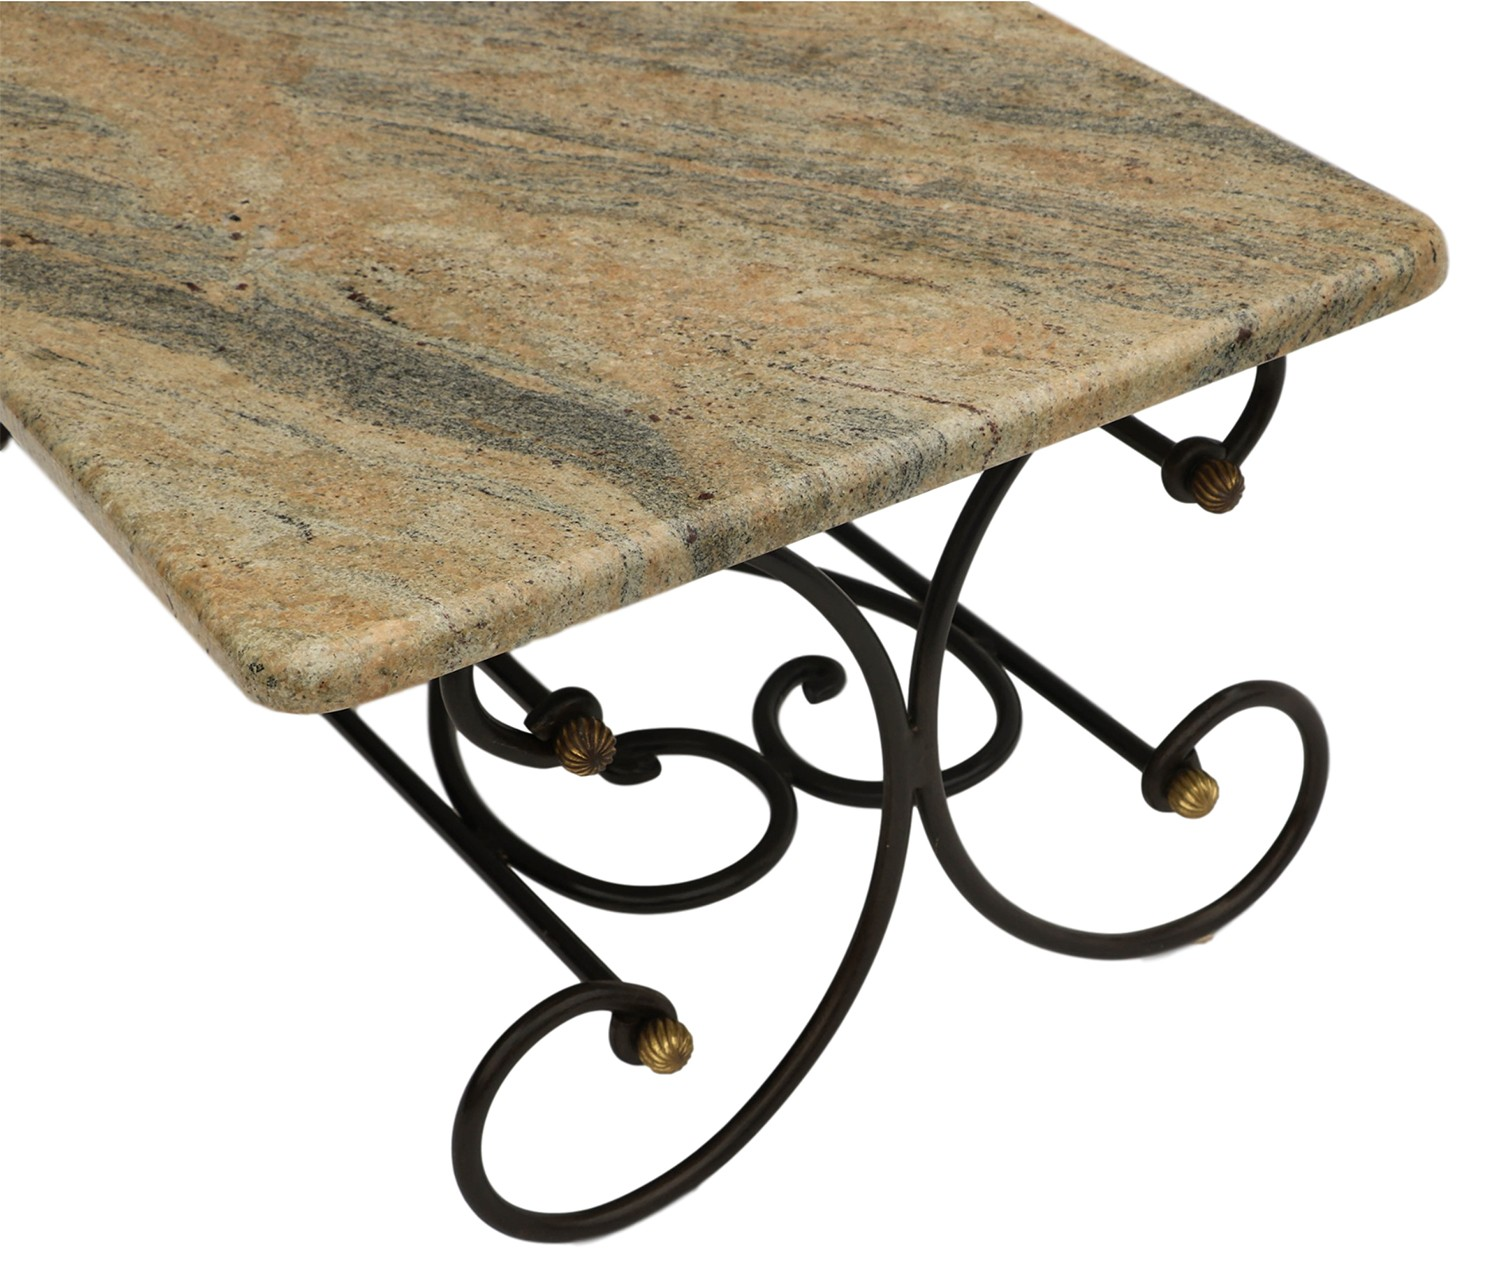 Wrought Aluminum Coffee Table: Granite Topped Coffee Table Wrought Iron Metal Base